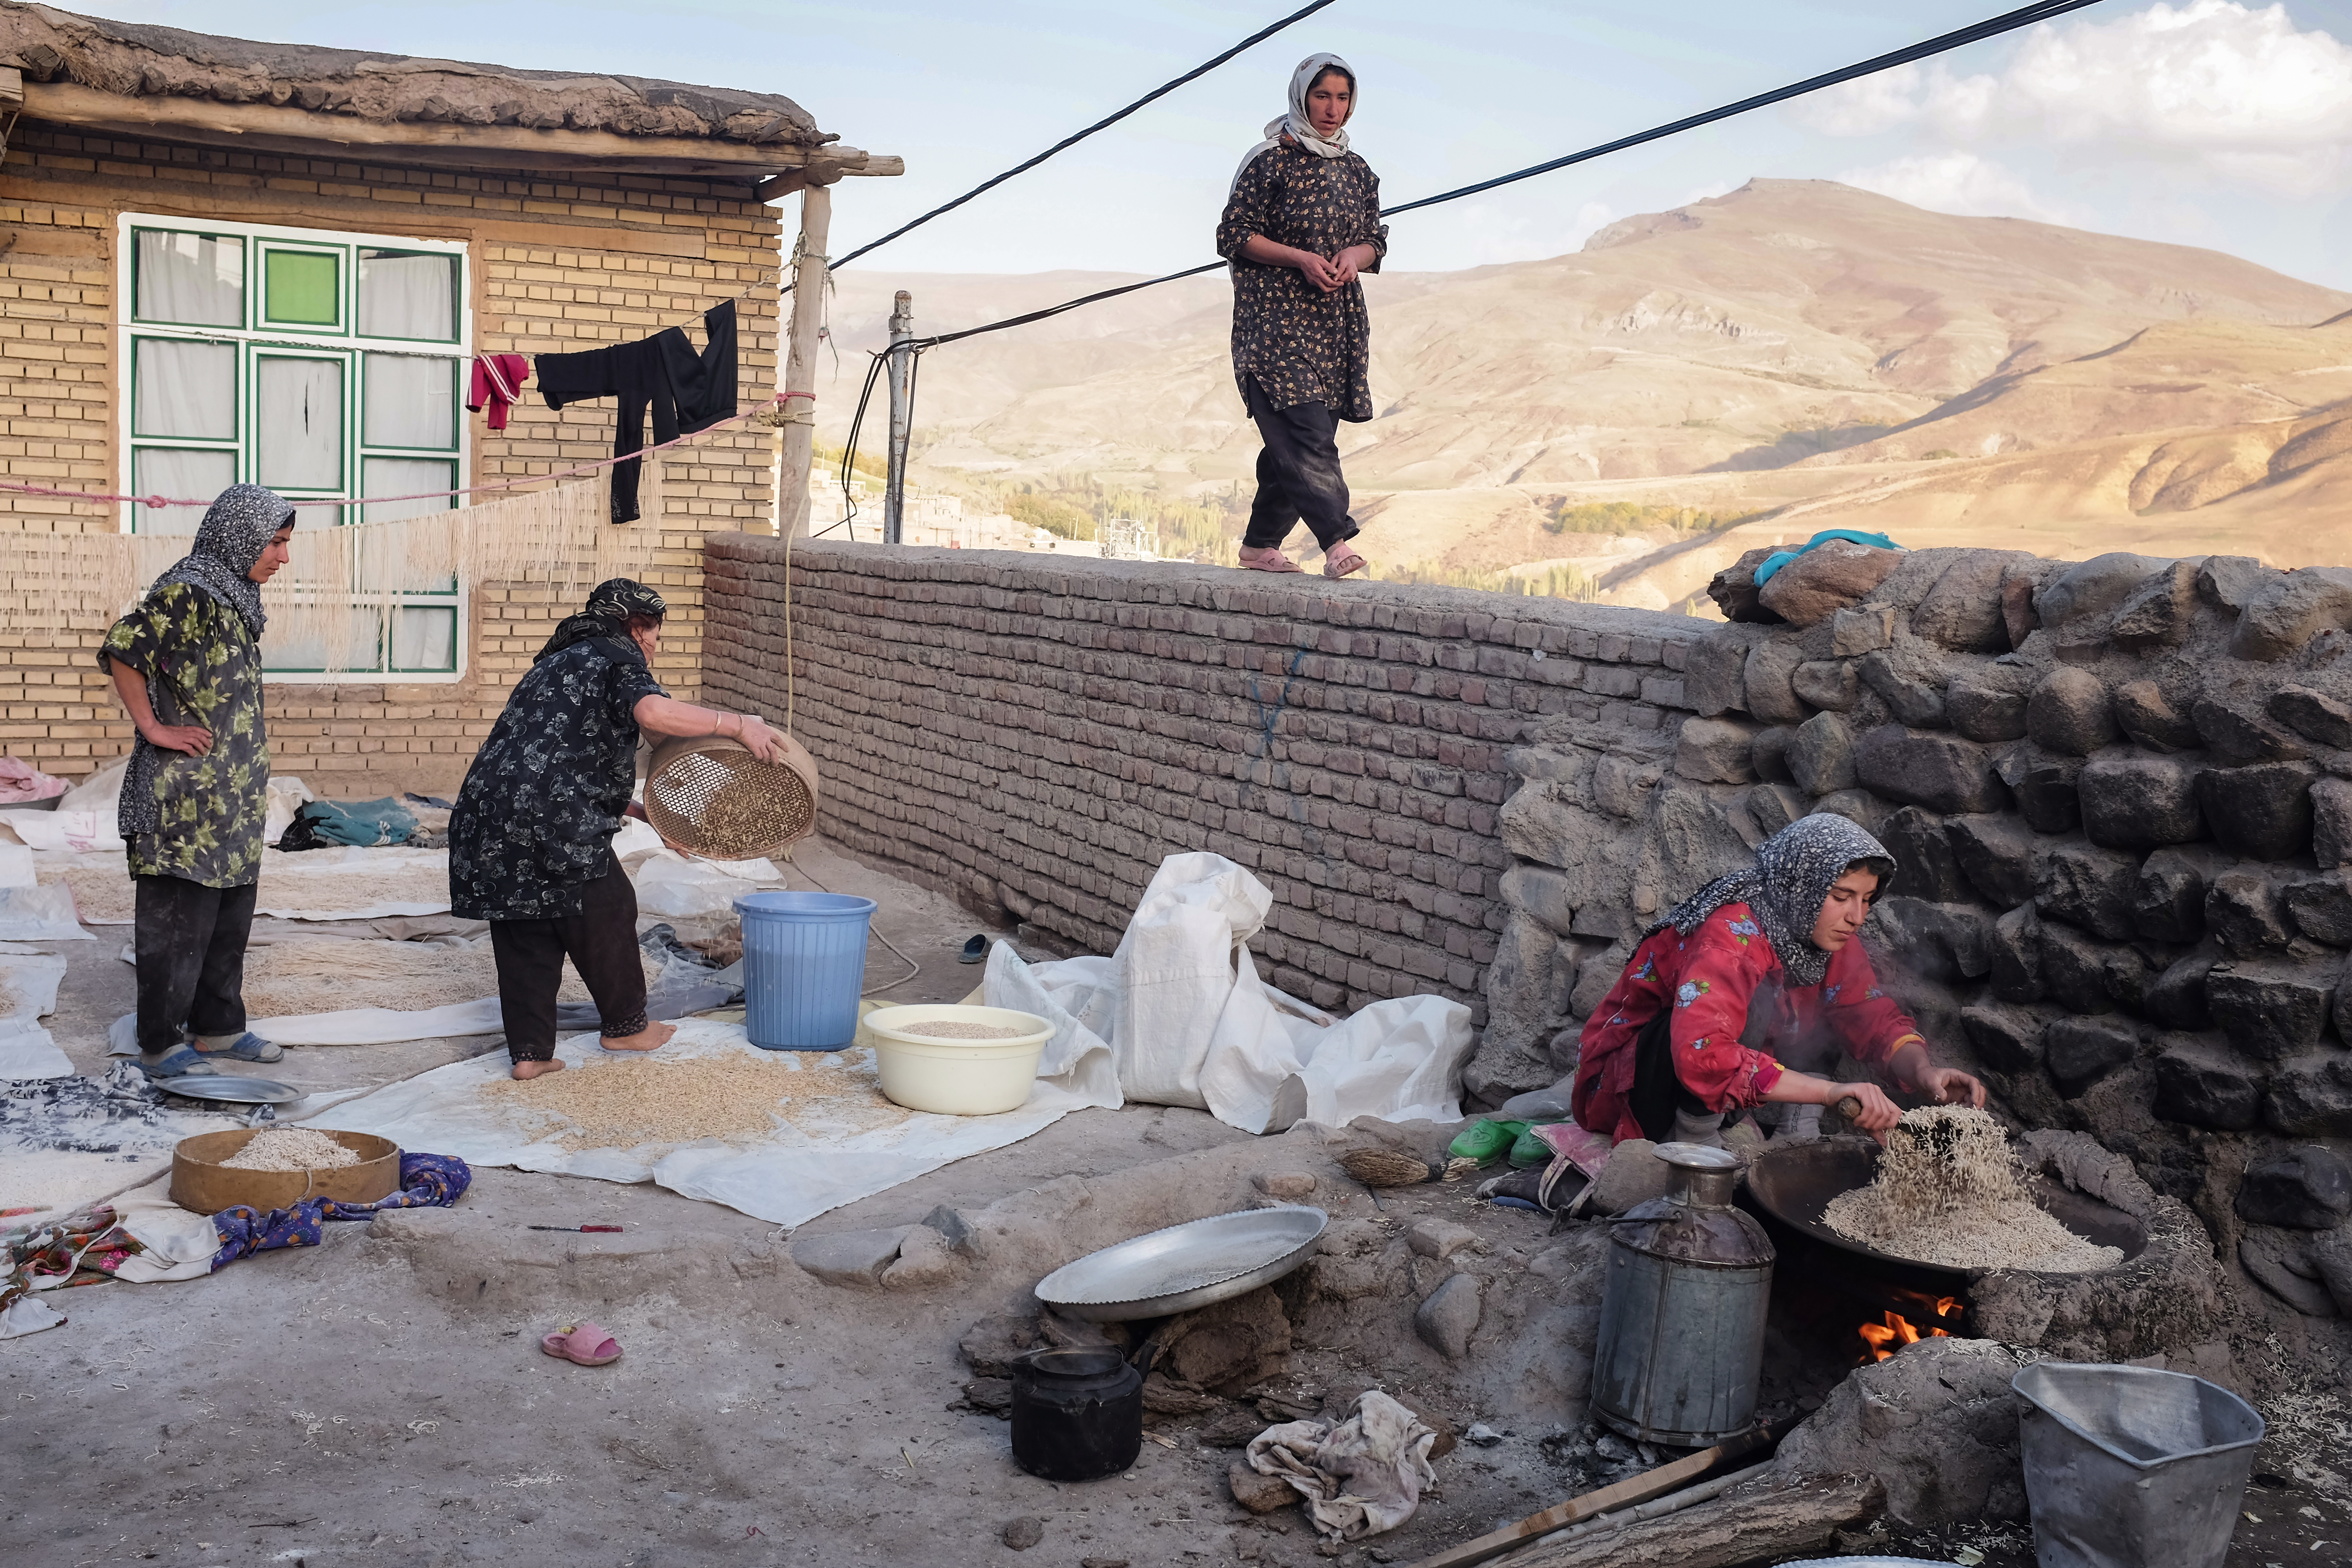 The courtyard outside the house. Roghayyeh and the other women in the family are making provisions for the coming winter months. Ajabshir, East Azerbaijan, Iran.